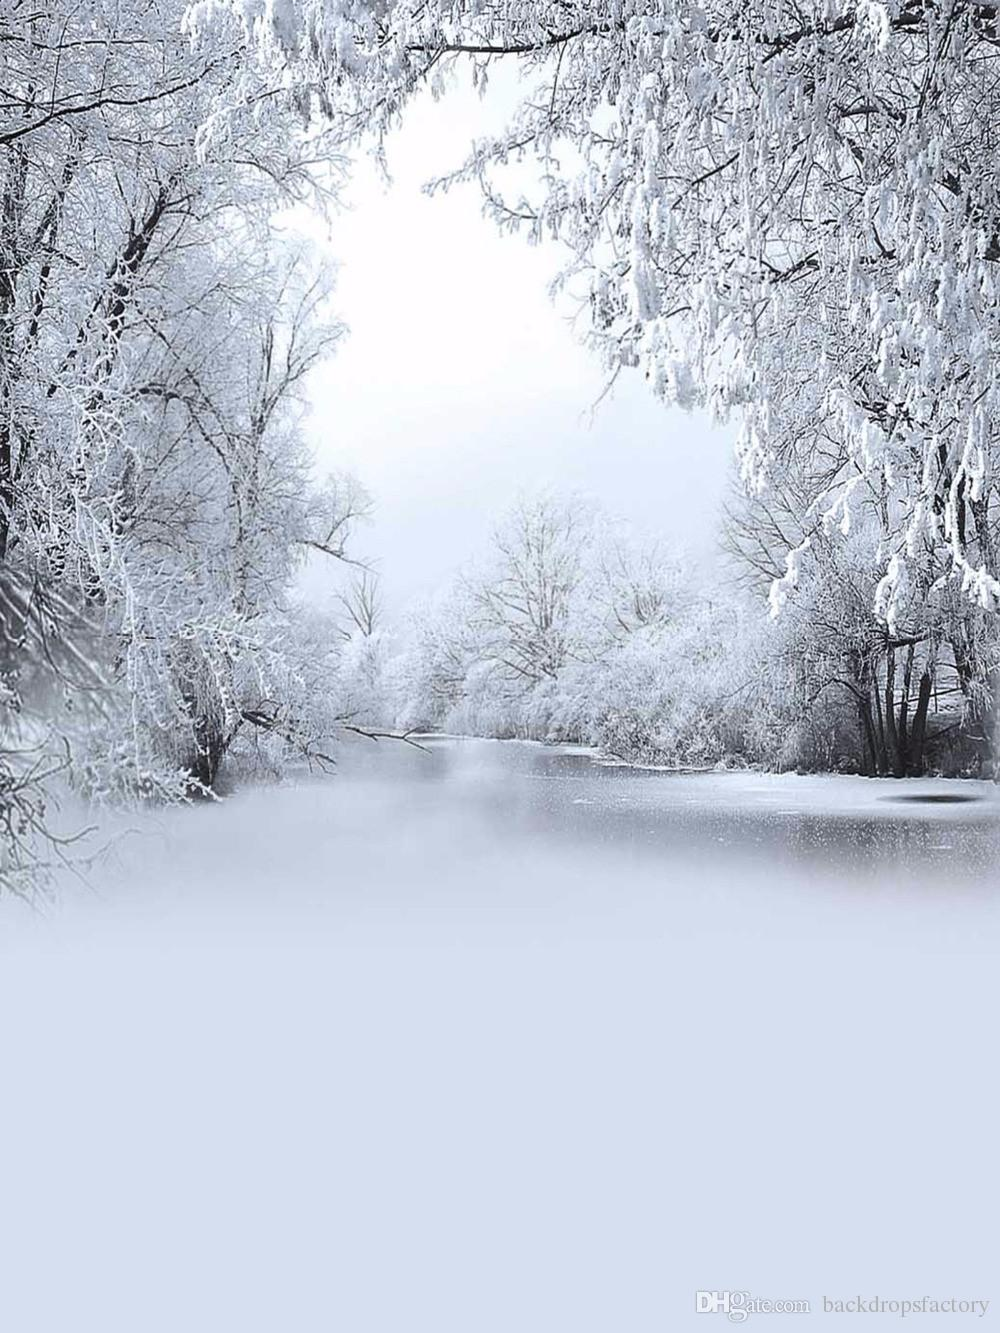 Snow Covered Trees Frozen River Photography Backdrop Vinyl Winter 1000x1333